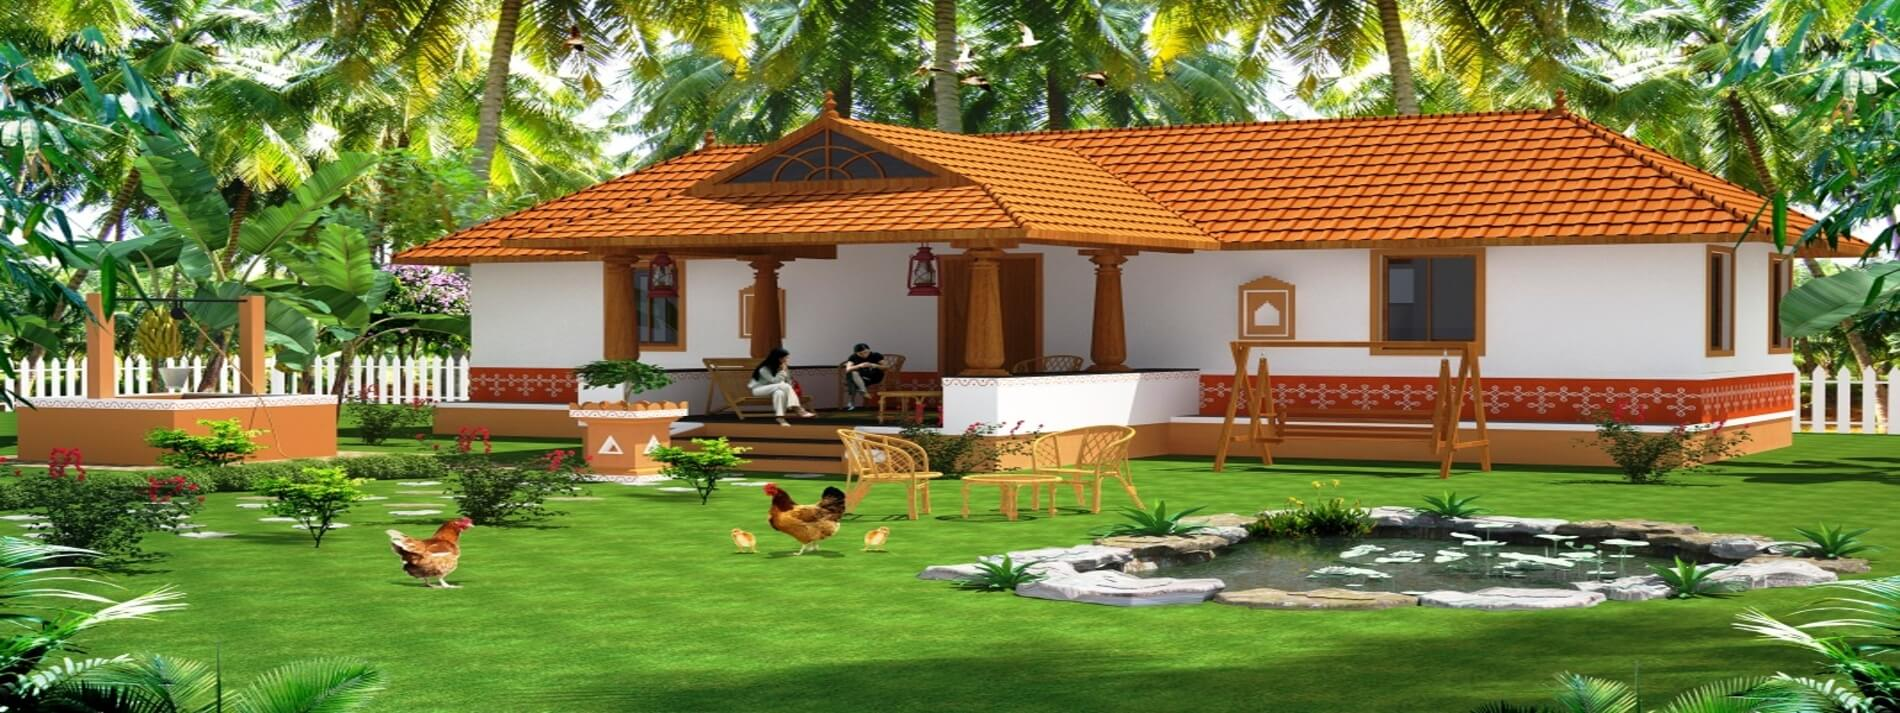 1 & 2 BHK Farmhouse Villas in Coimbatore